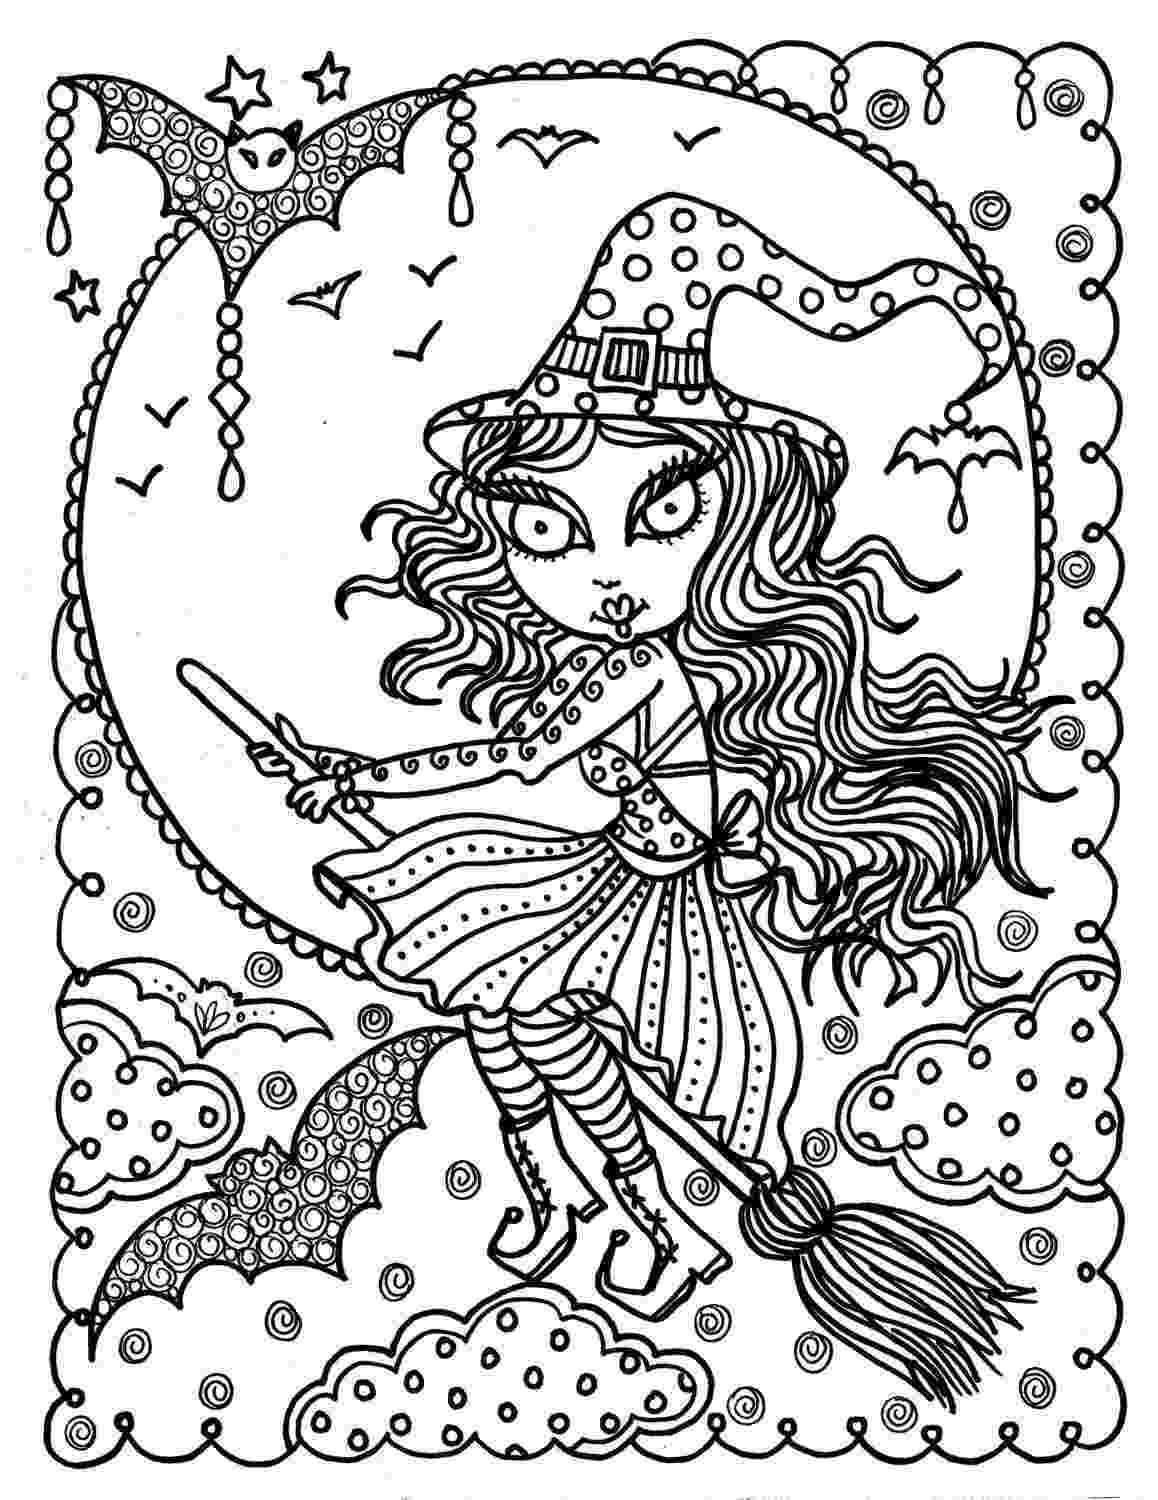 coloring halloween pages free halloween coloring pages for kids or for the kid in coloring halloween pages